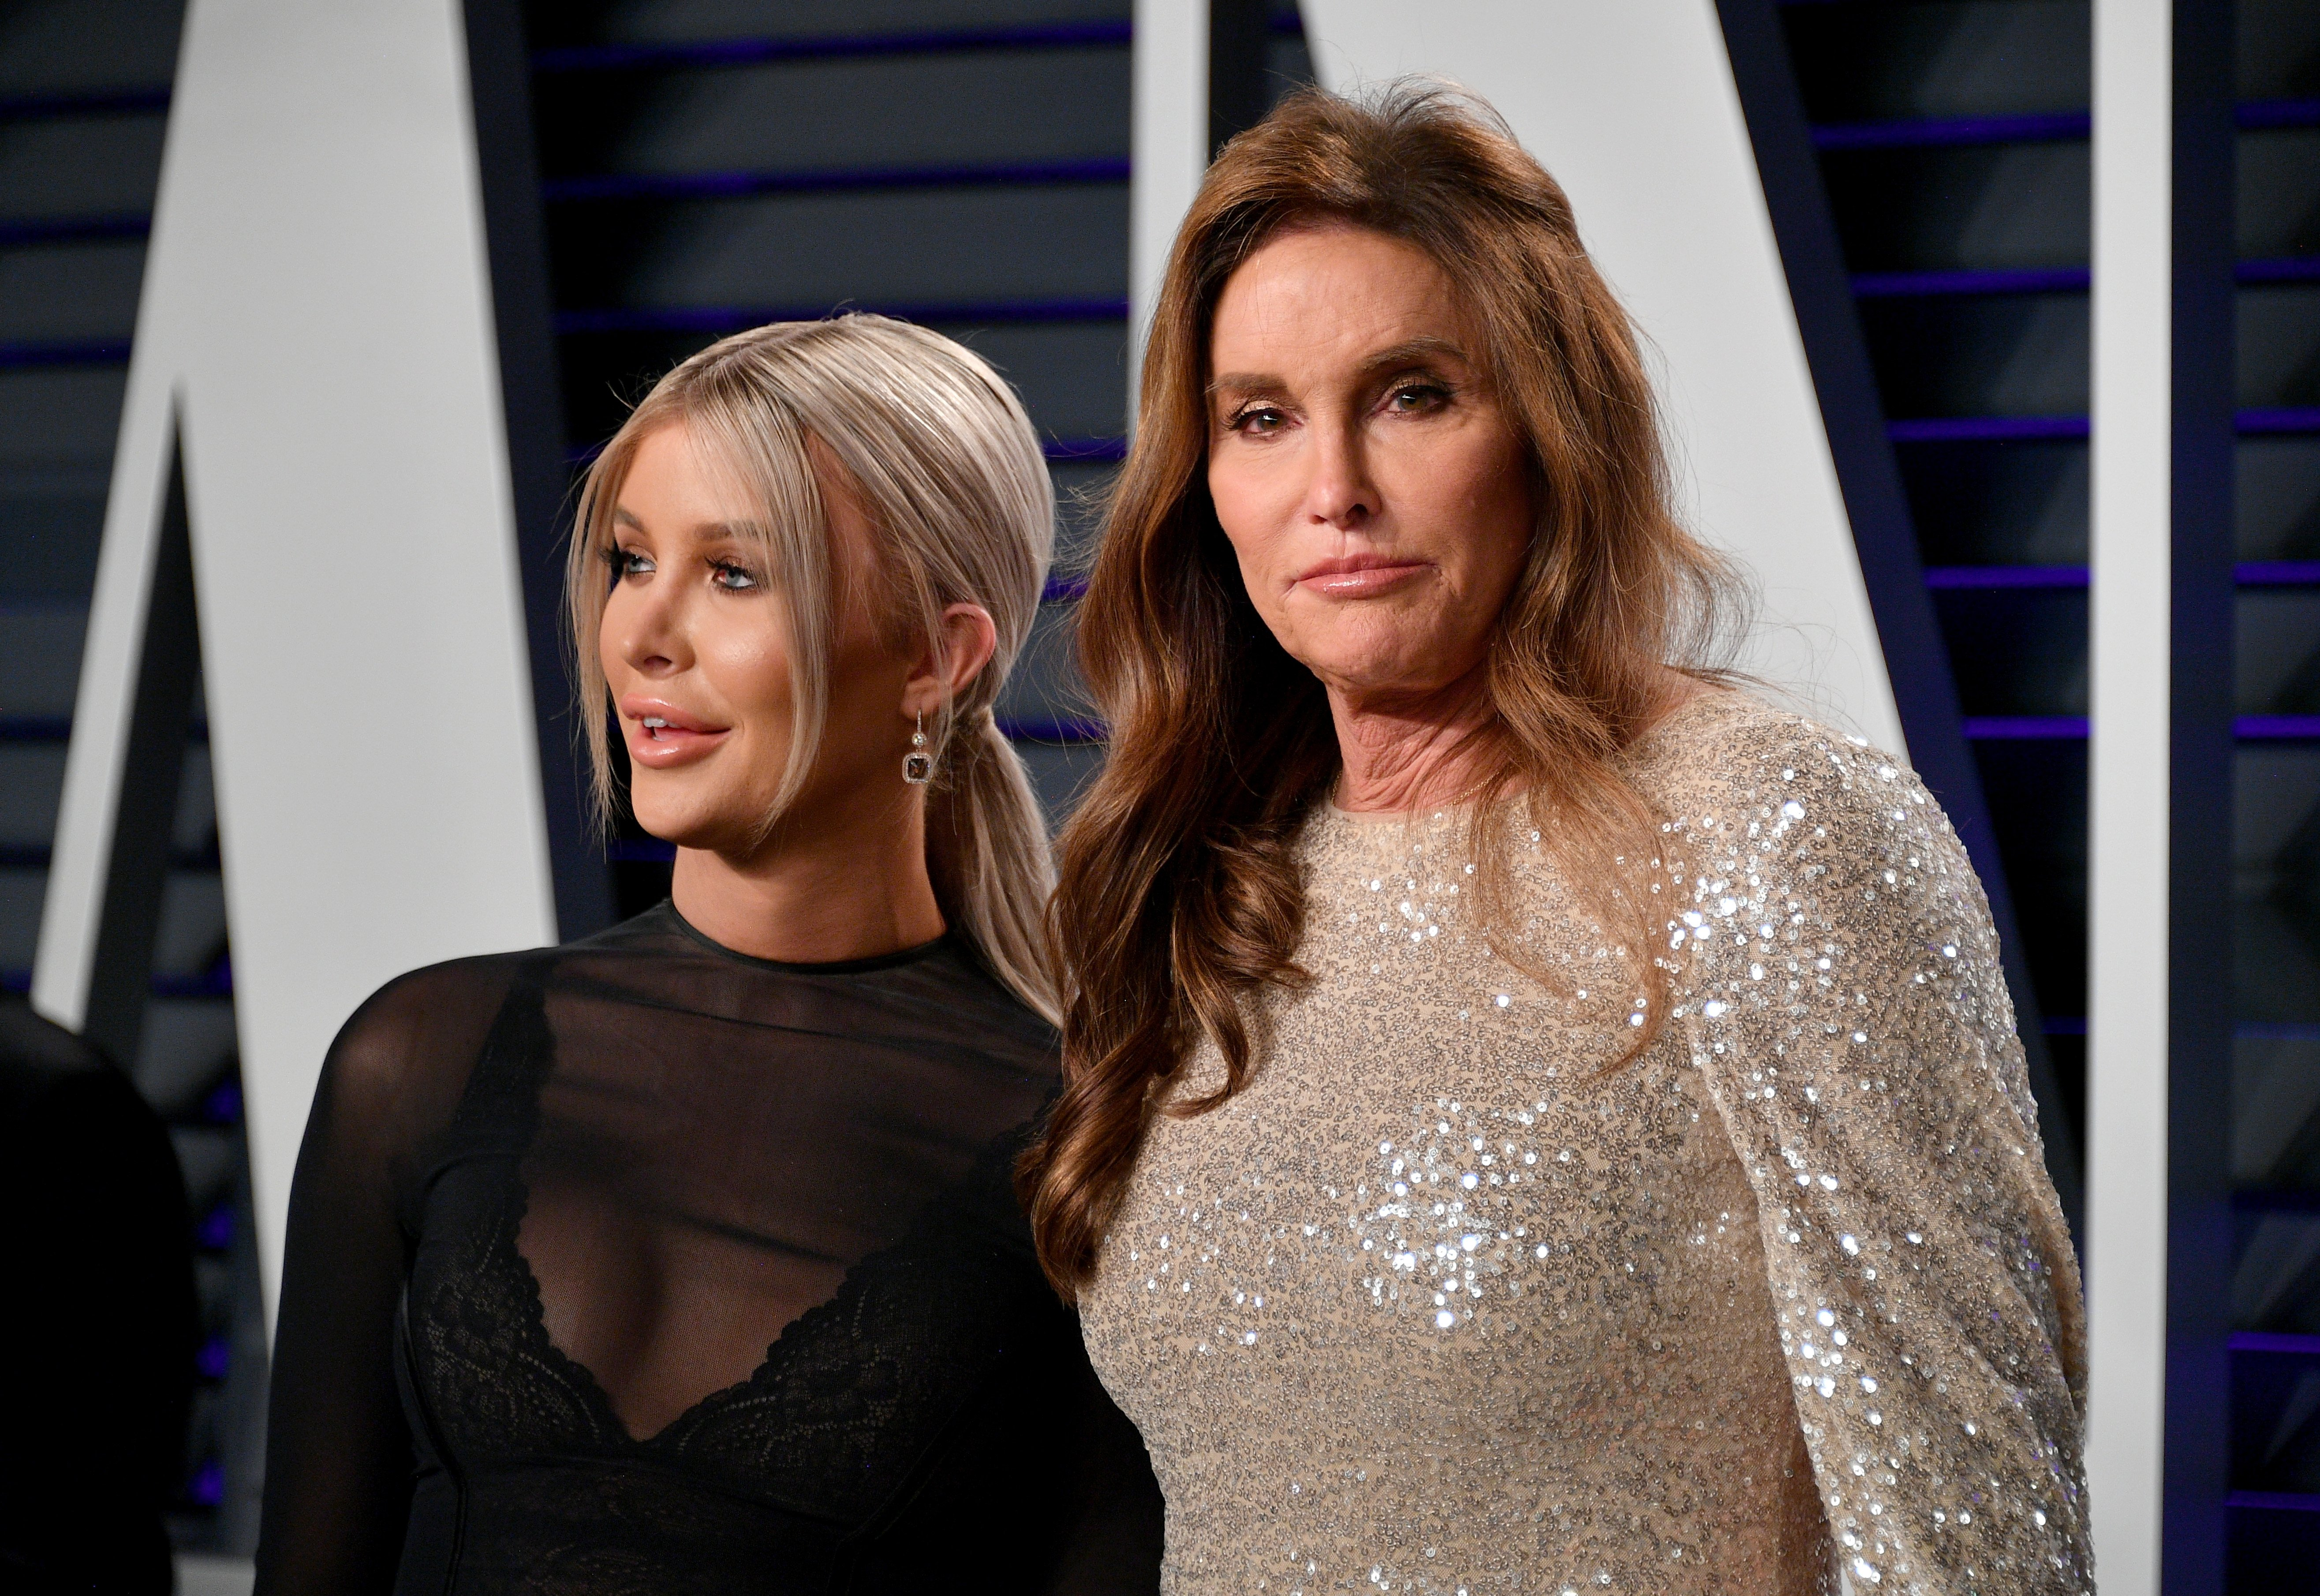 Caitlyn Jenner and Sophia Hutchins attend the Oscars Party in 2019  | Photo: Getty Images